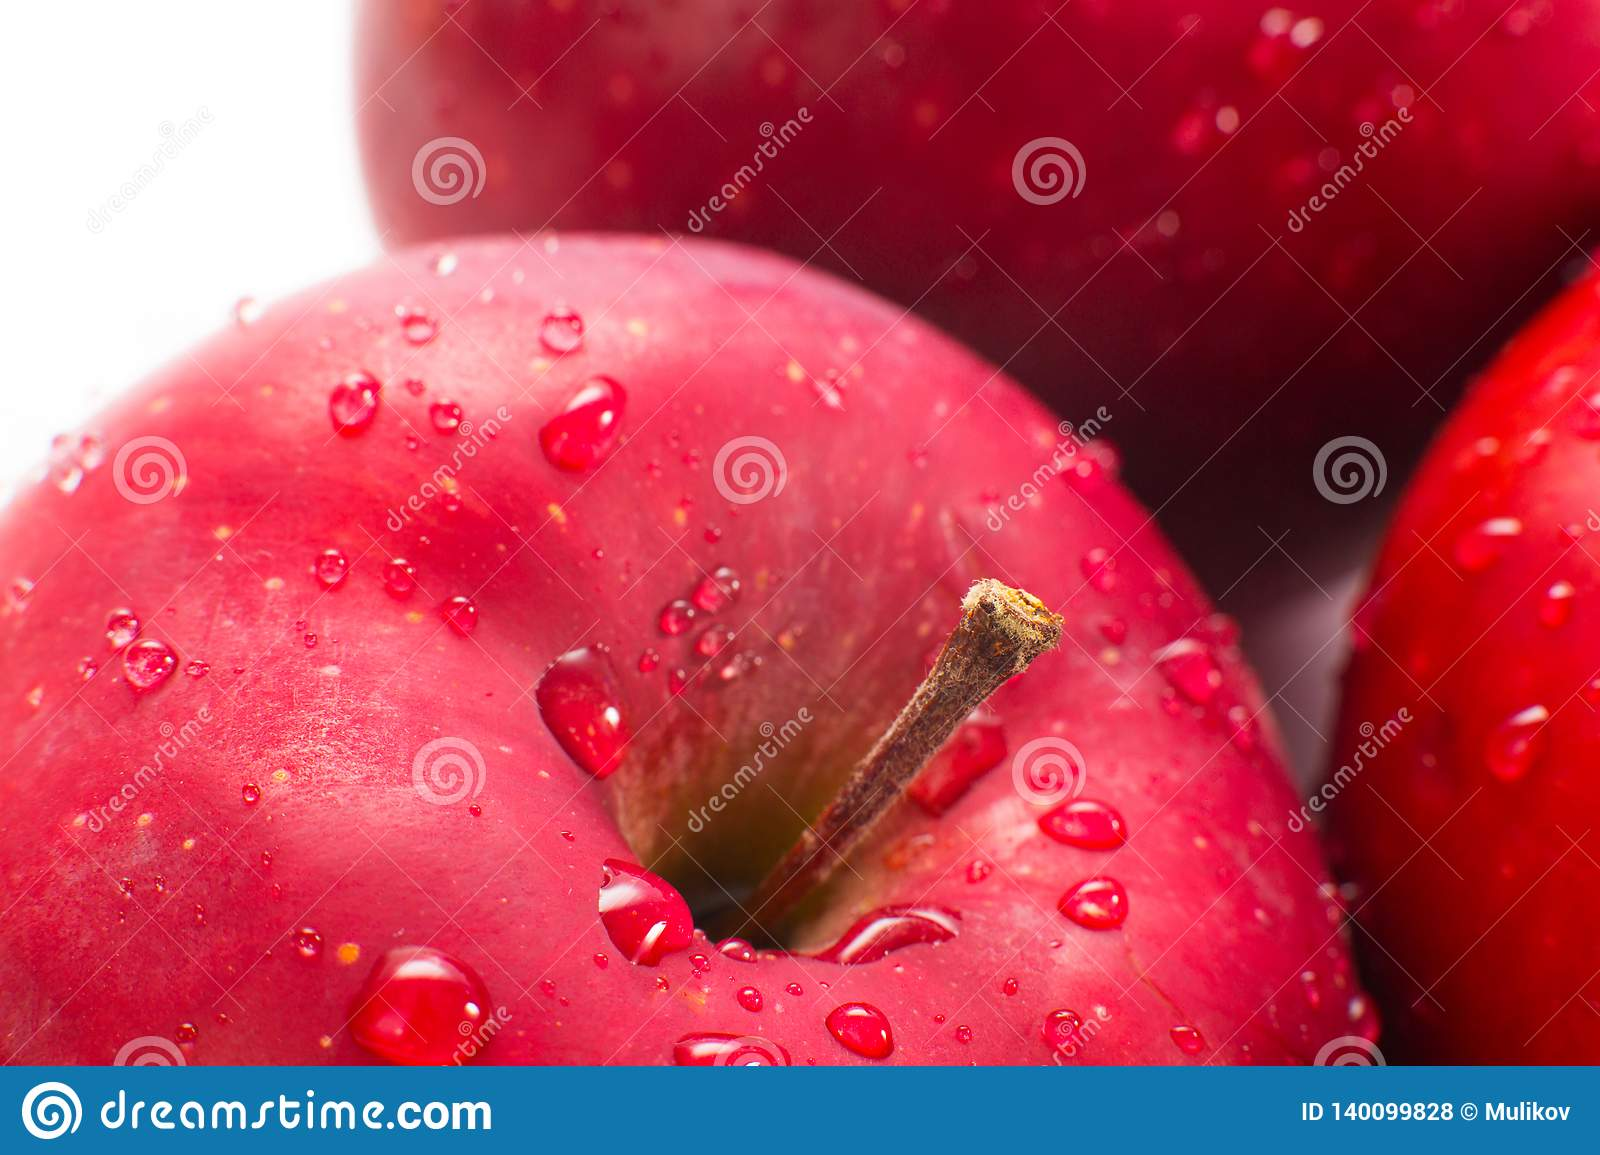 Macro of fresh red wet apples with drops.